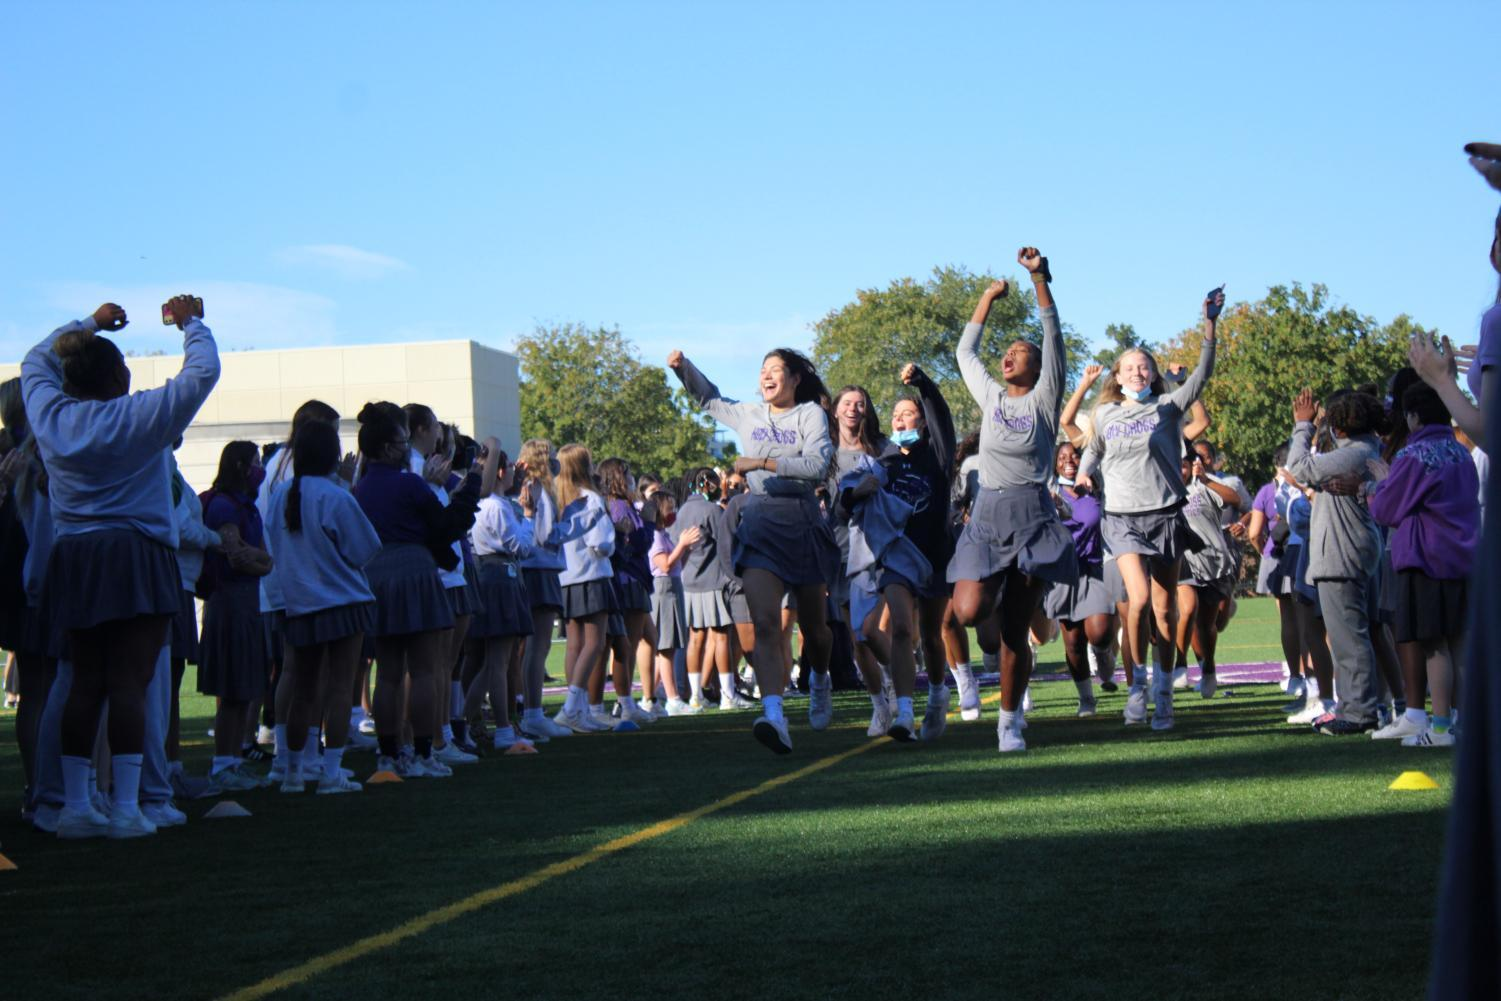 Volleyball team running out for the pep rally as the crowd cheers them on.